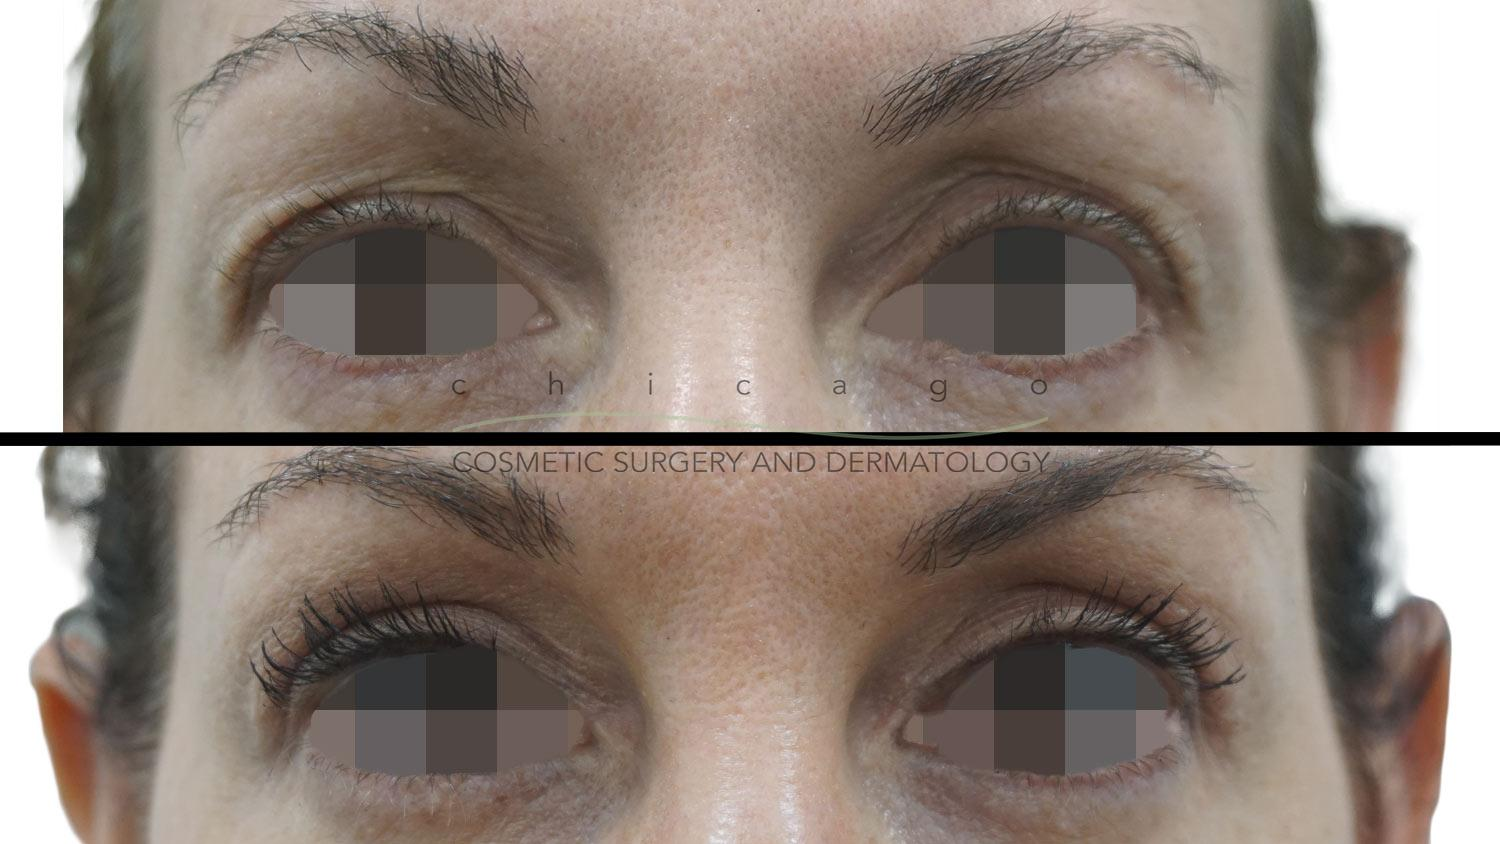 Blepharoplasty with Dr. Niki Christopoulos